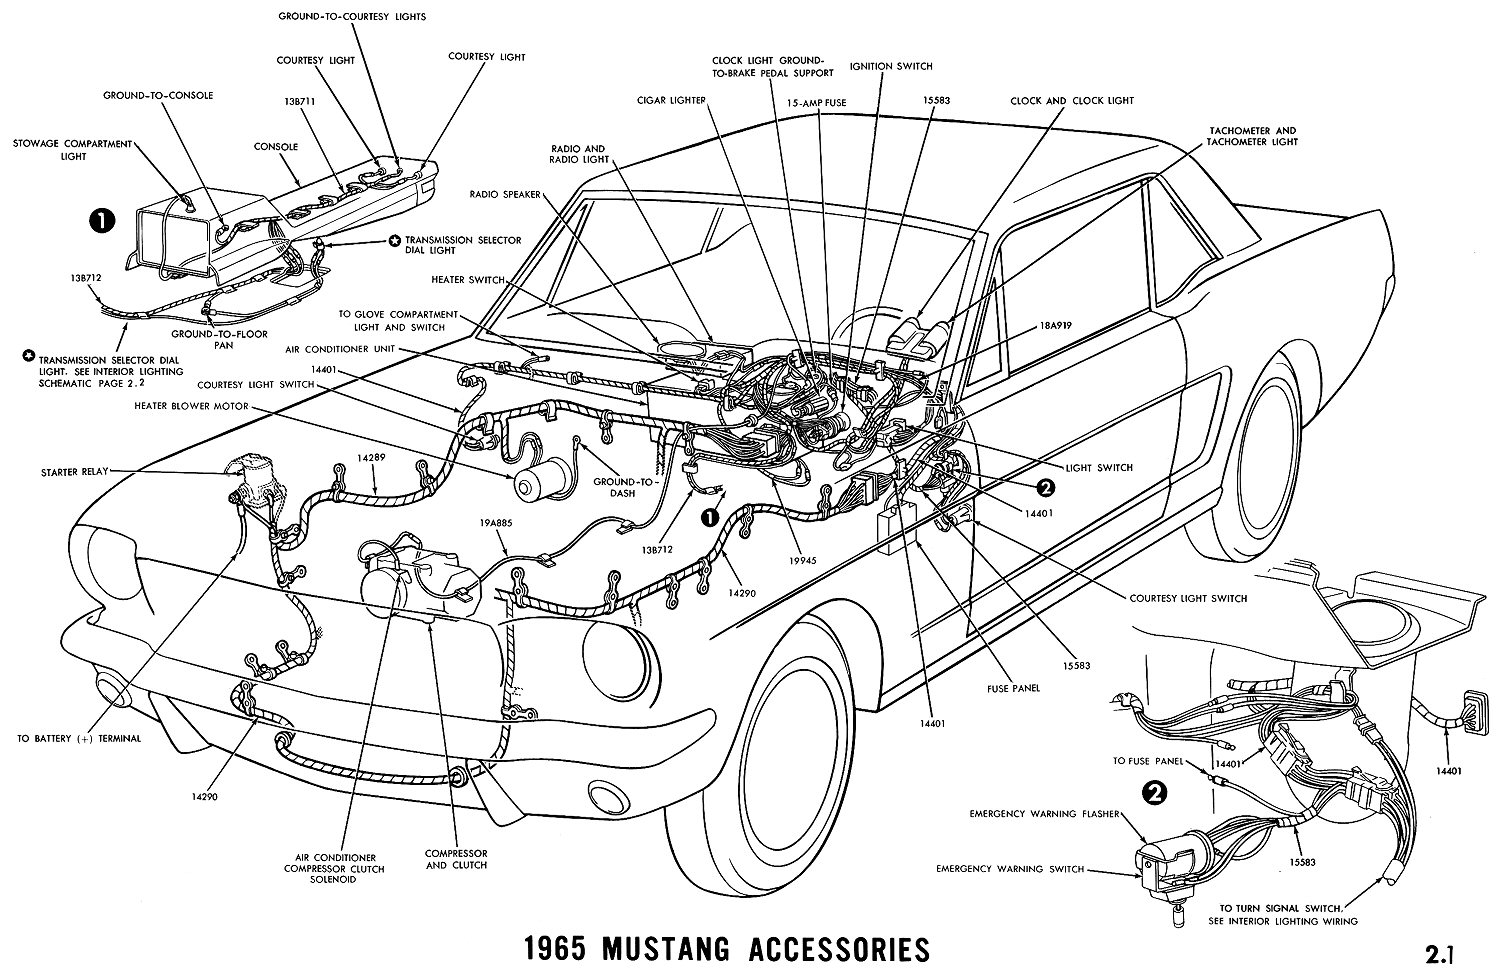 65 mustang accesories 1965 mustang accesories diagram 1965 mustang ignition switch wiring diagram at gsmx.co